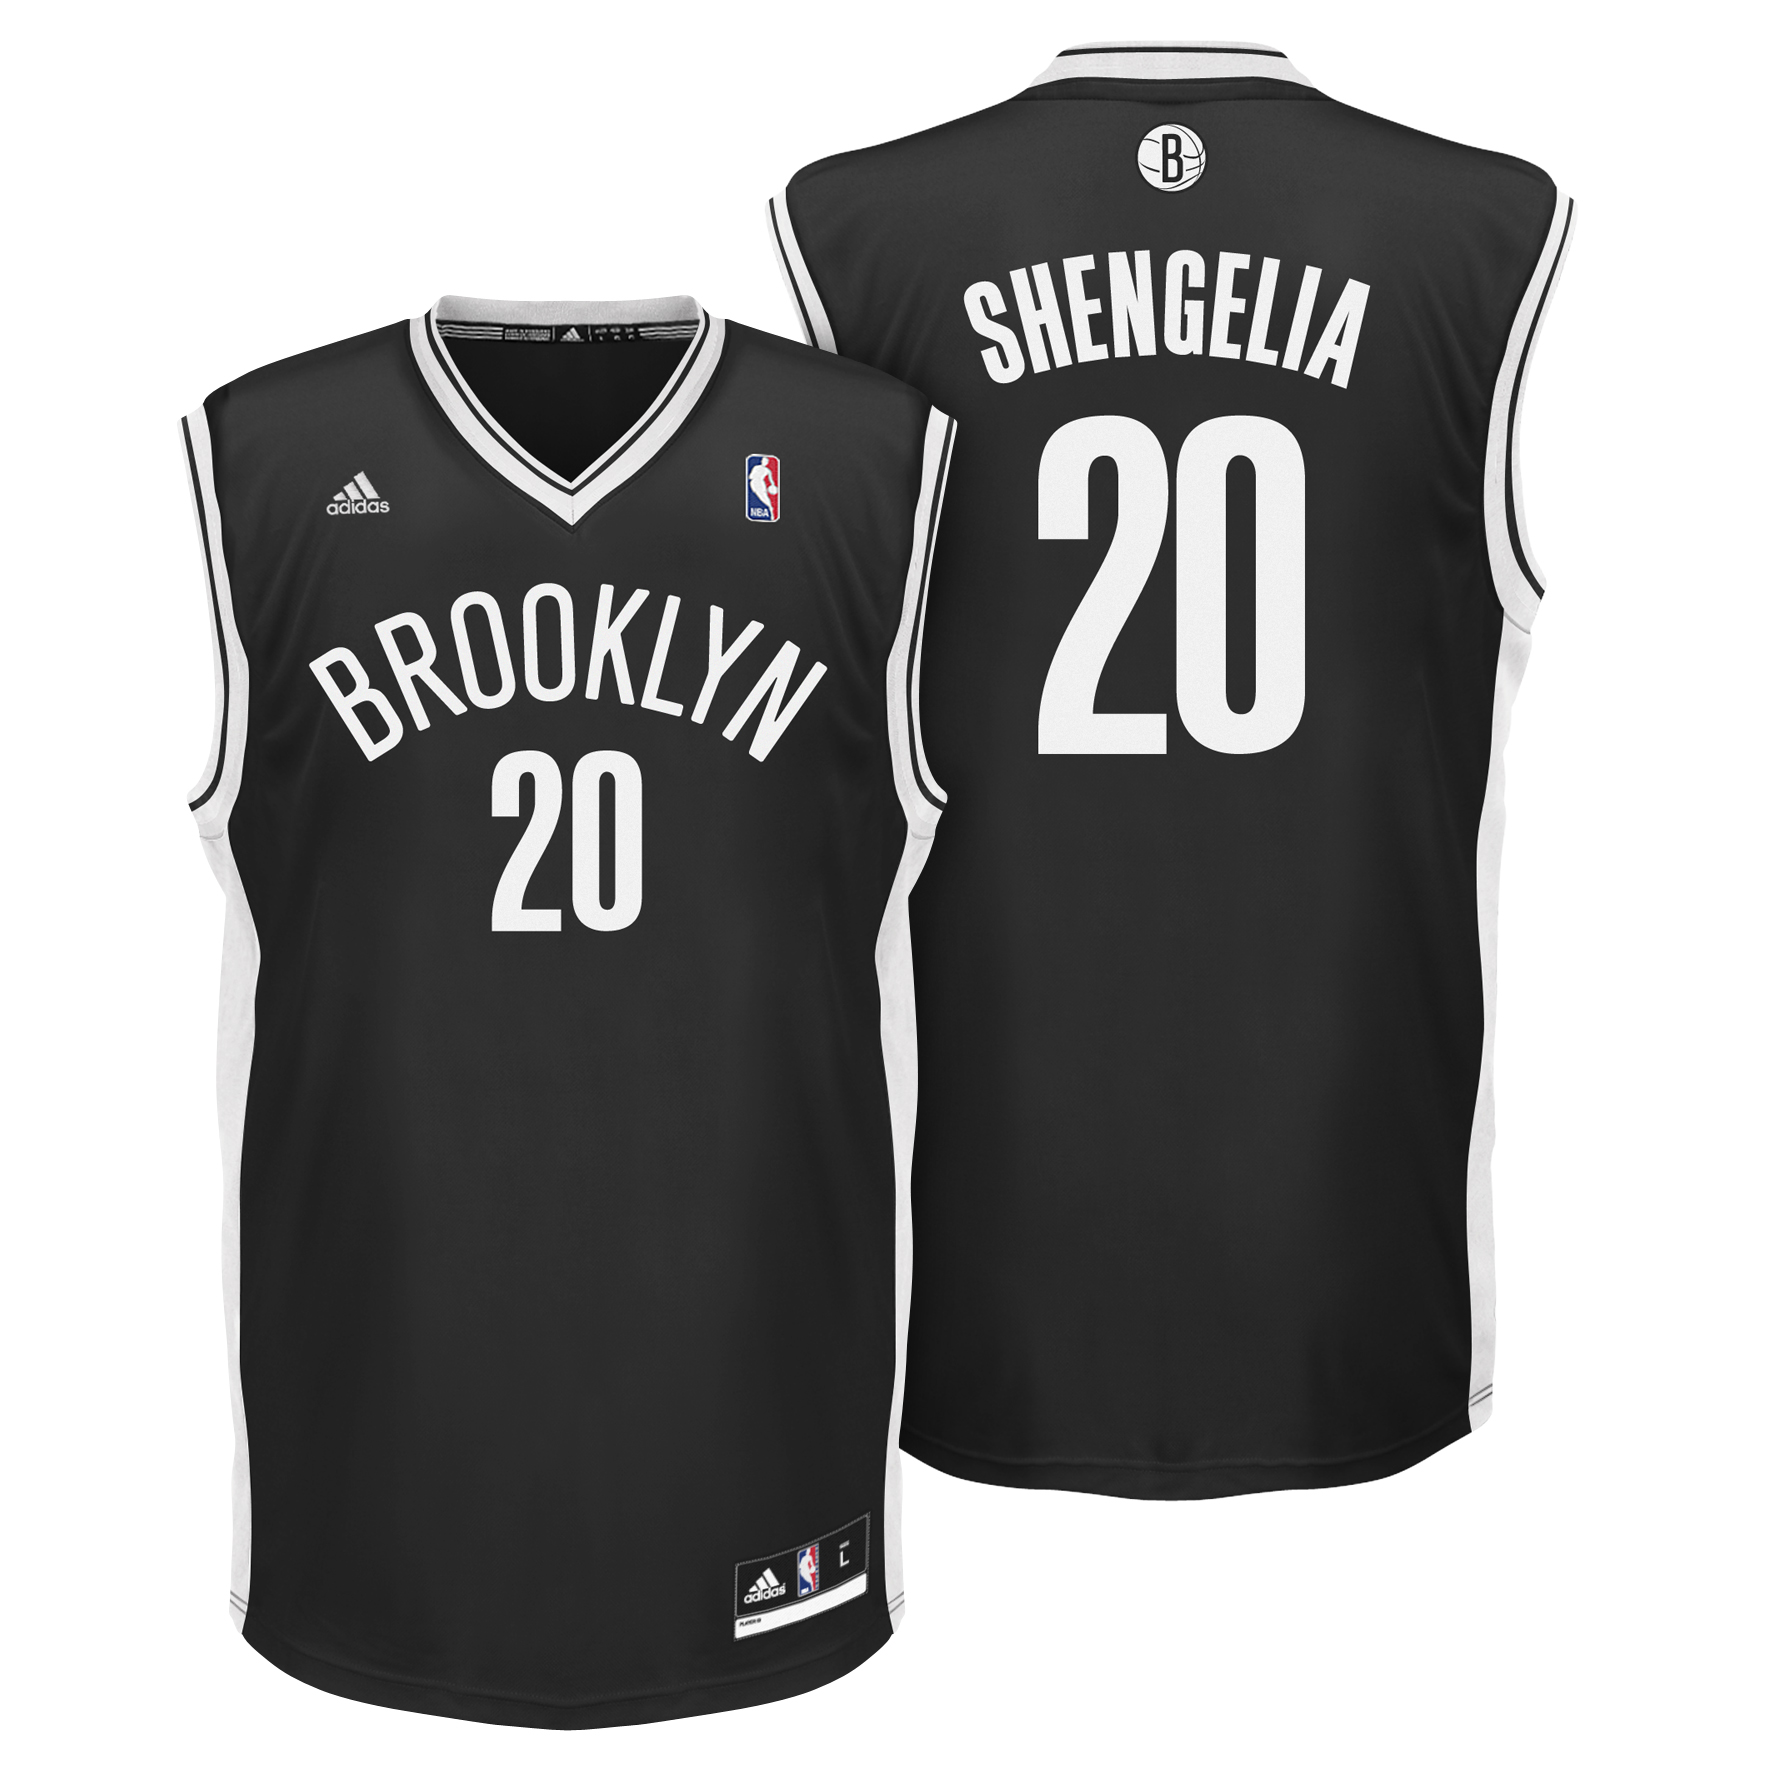 Brooklyn Nets Road Replica Jersey - TorShengelia - Mens